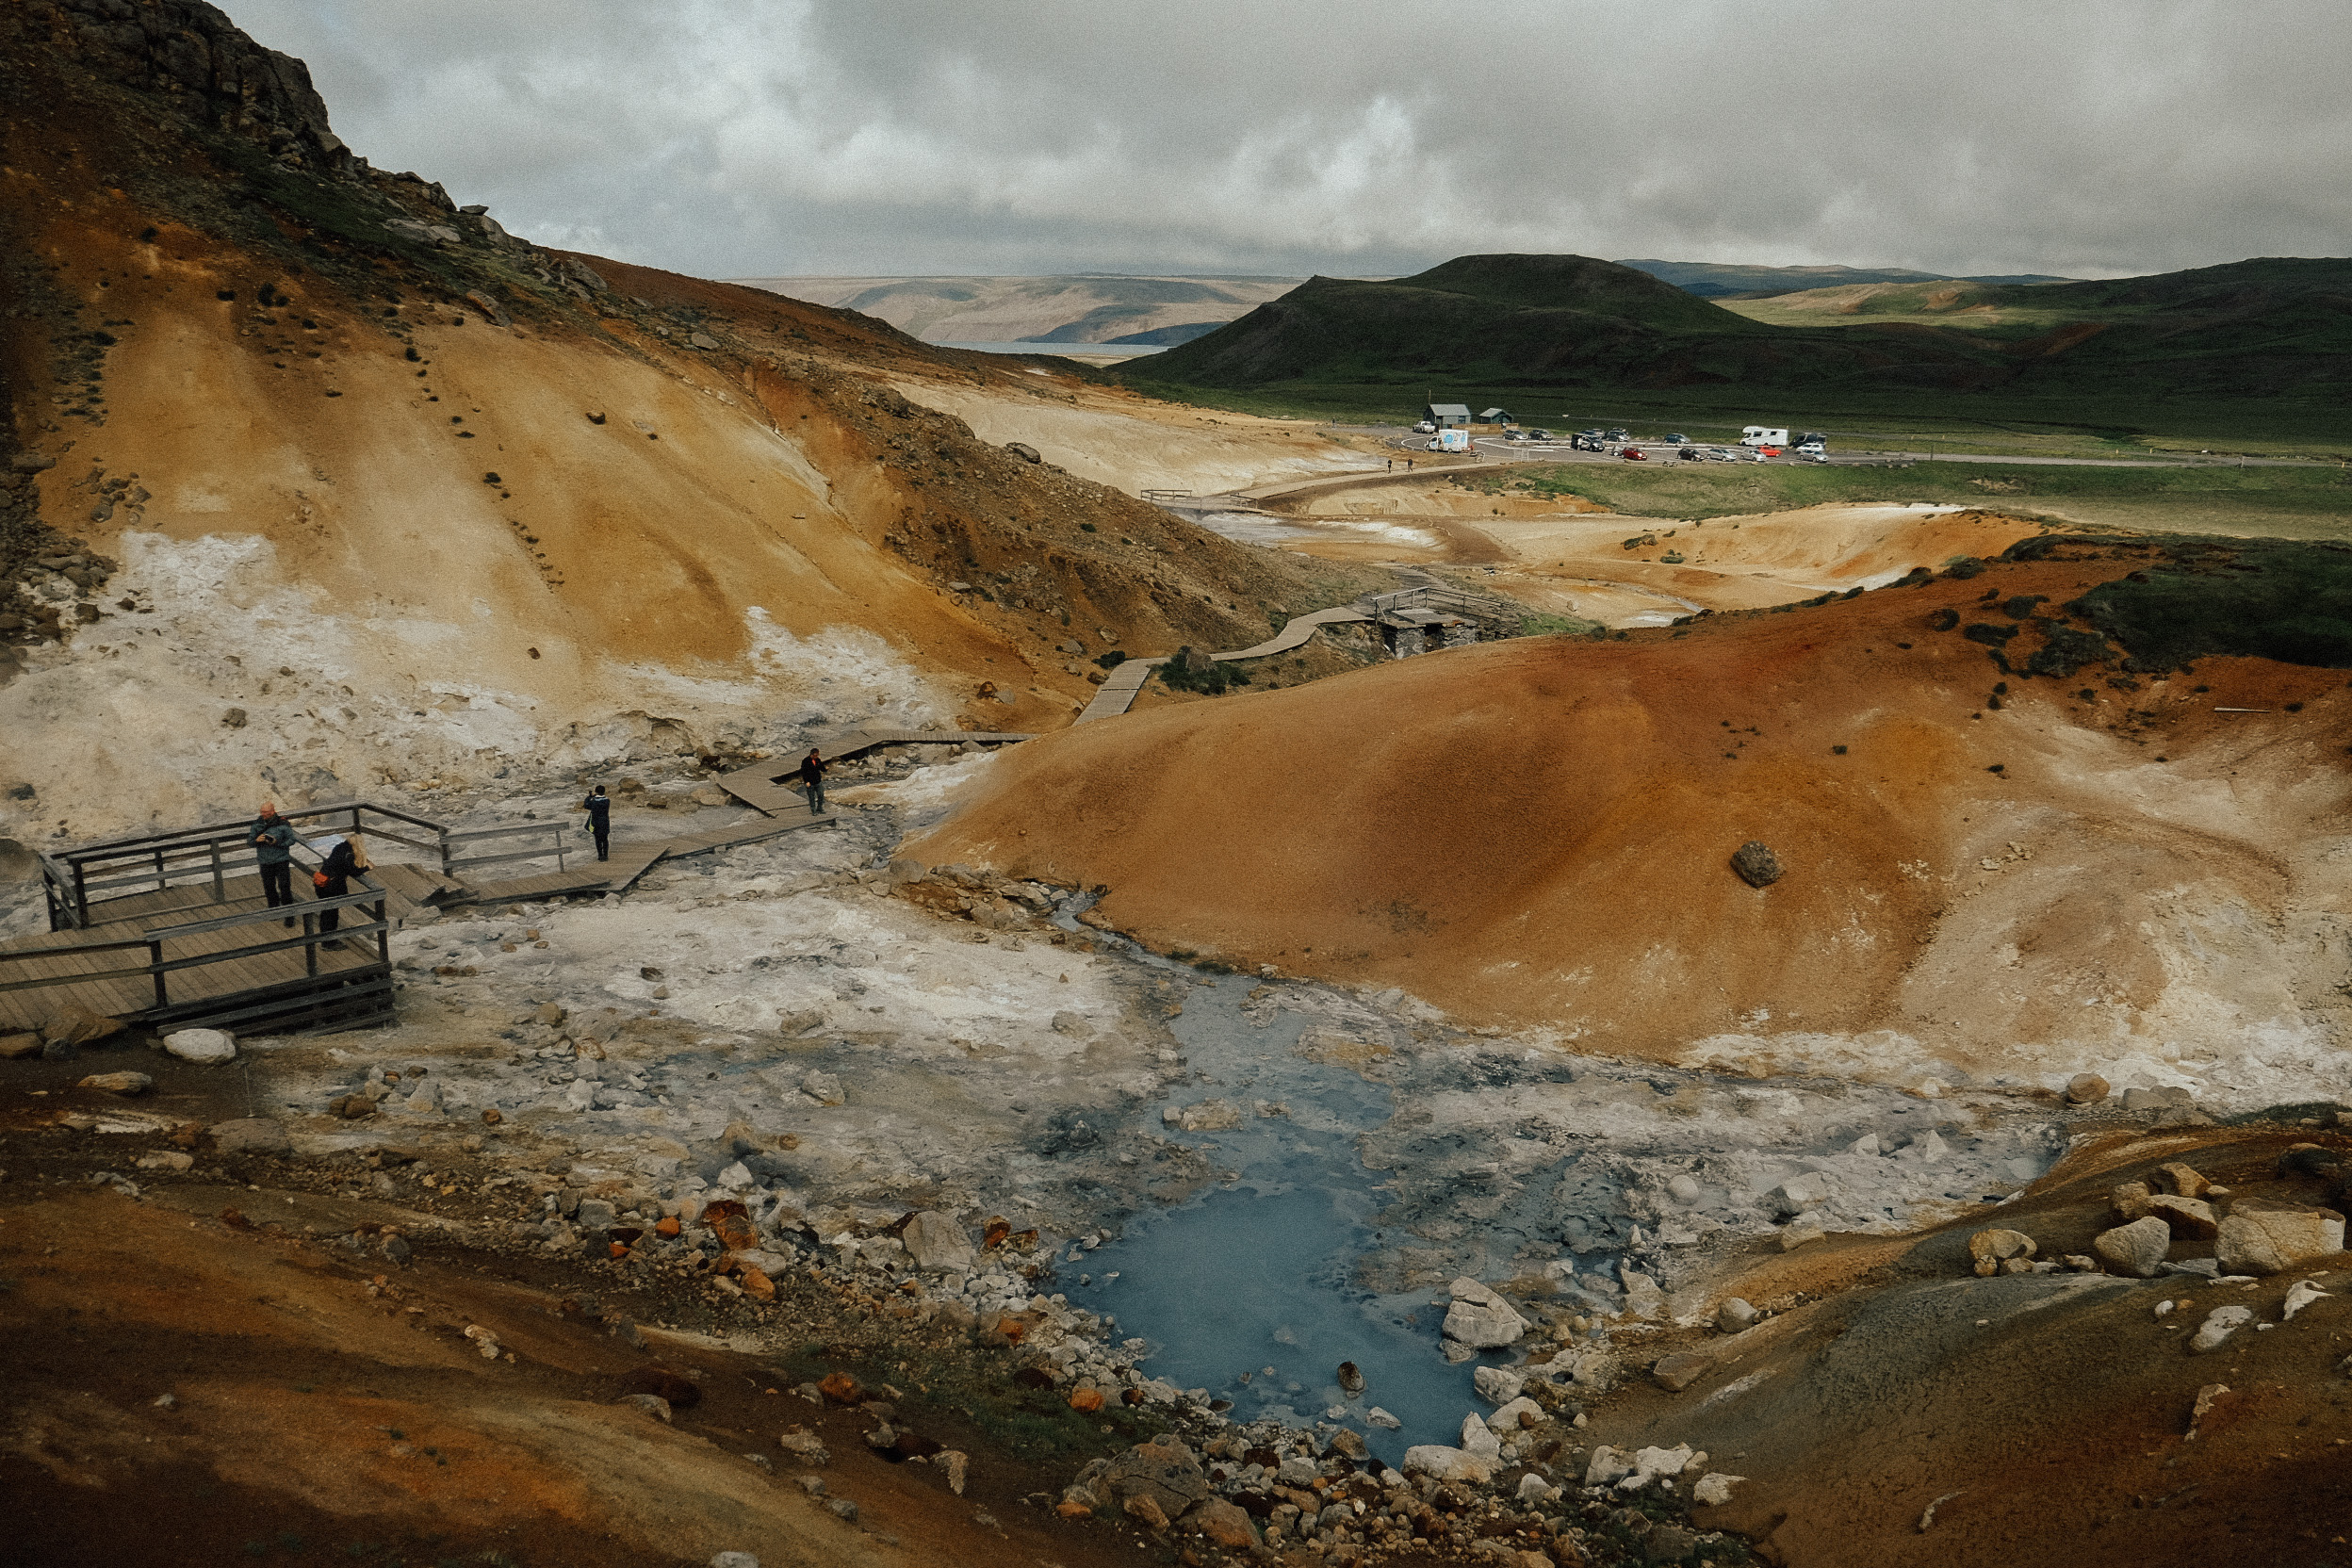 """Natural hot springs or """"hot pots"""" as they are often called, abound in Iceland. Although they are certainly not all swimmable, as some of them are almost lava temperature! So definitely check the signs before you stick a toe in."""